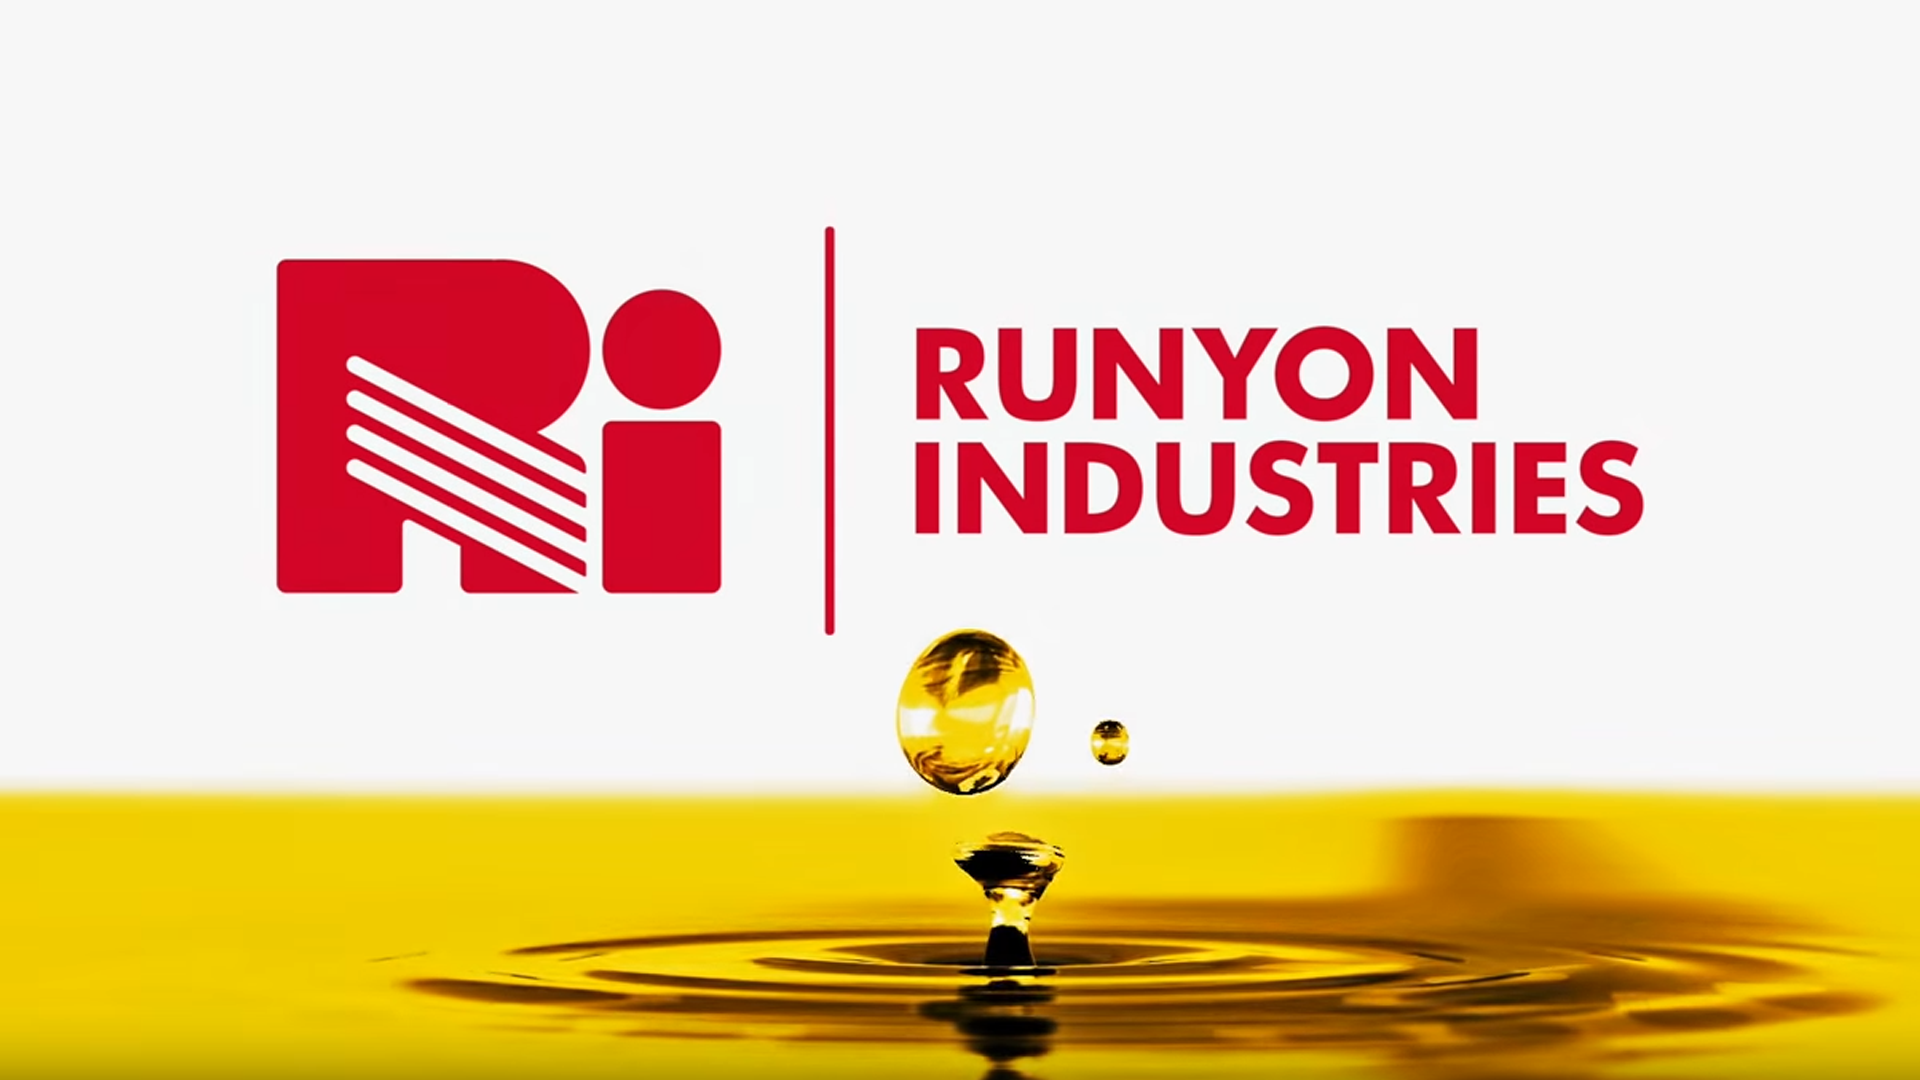 Runyon-Industries_Video-Production_Dreamcapture_Memphis-TN